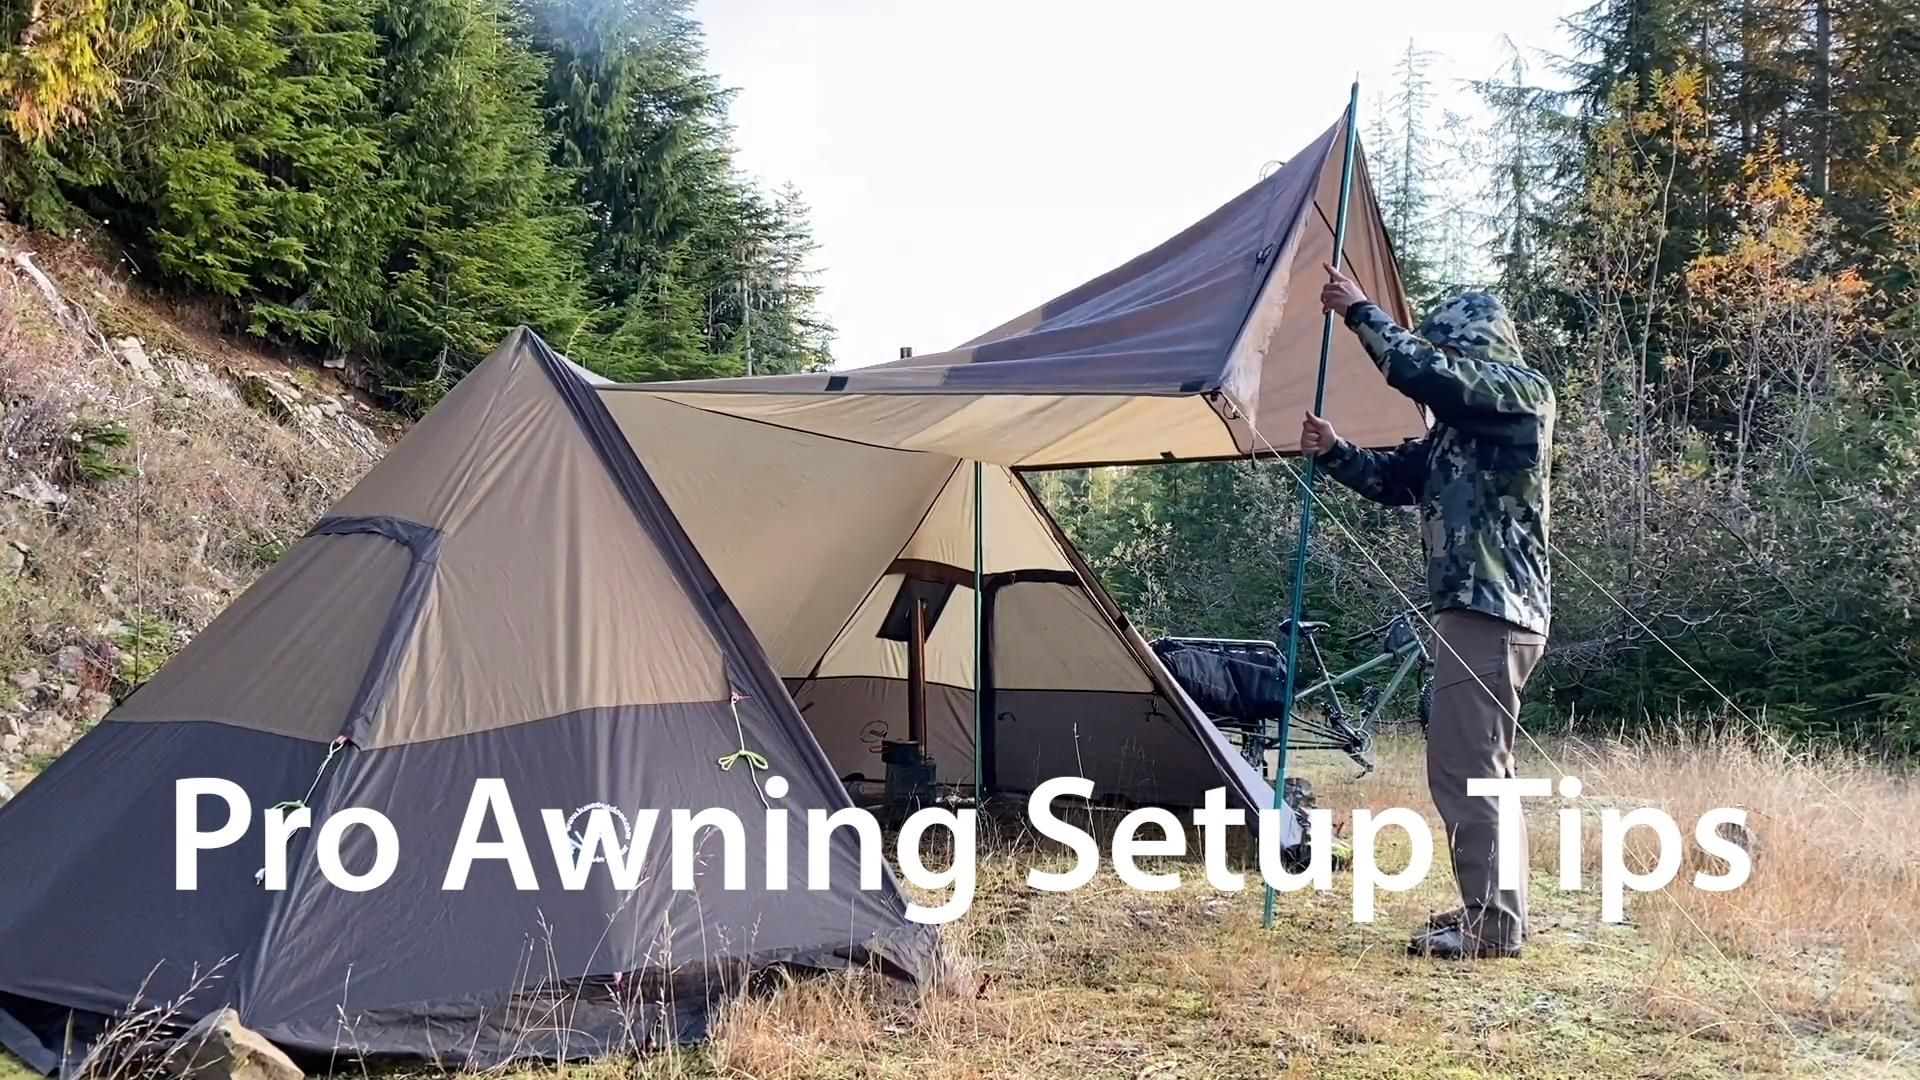 Twinpeak Awning Tent 5p With Wood Stove Jack Video Video In 2020 Tent Fishing Tent Camping Must Haves